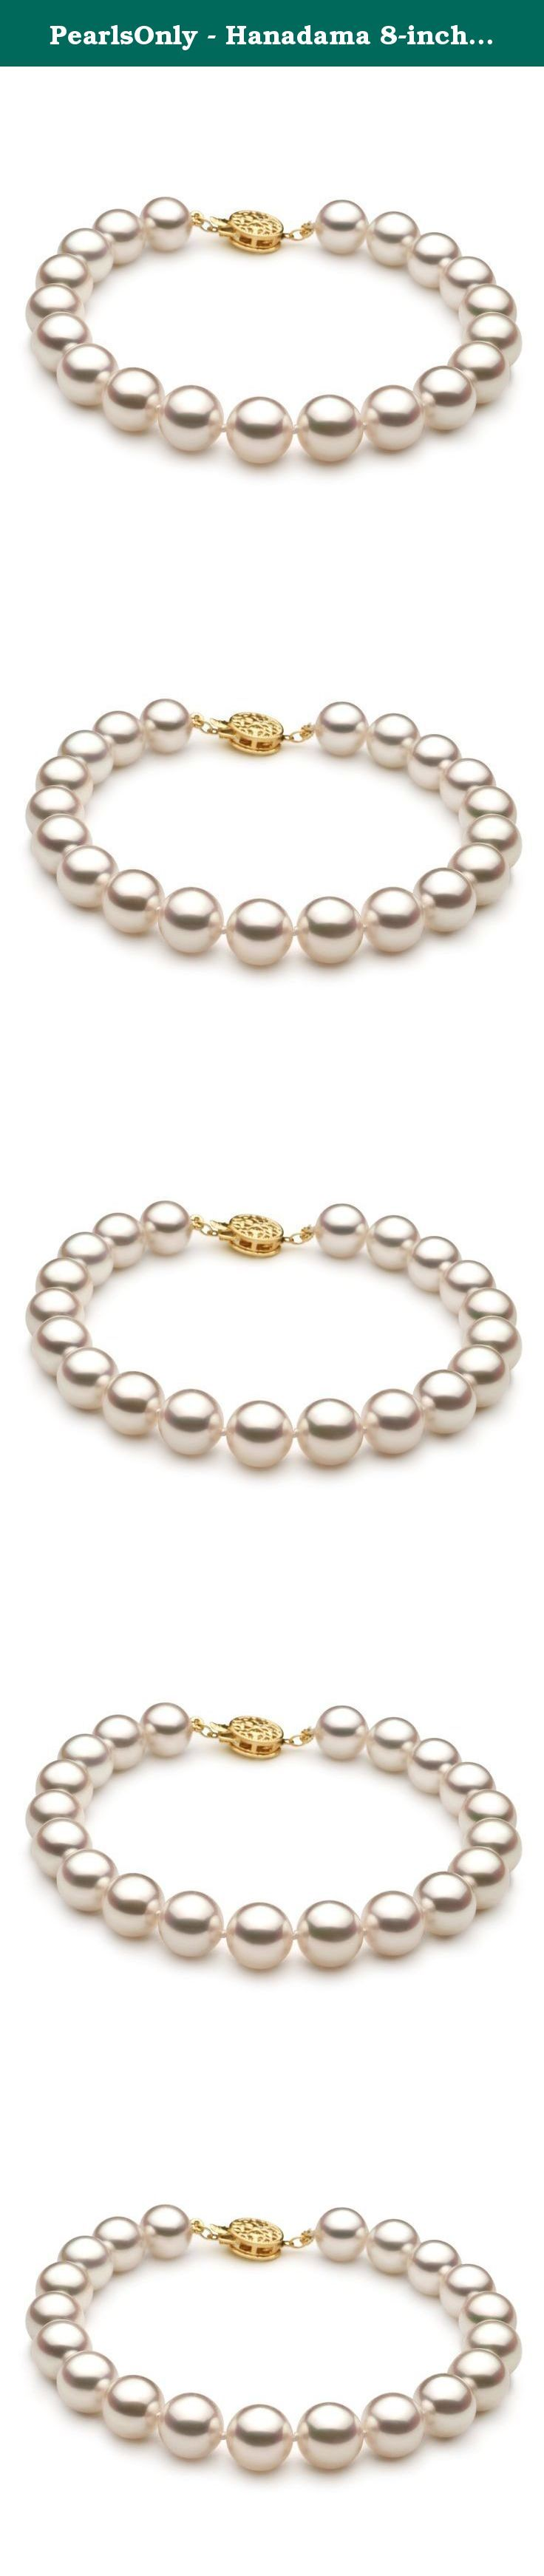 PearlsOnly - Hanadama 8-inch White 8.5-9mm Hanadama - AAAA Quality Japanese Akoya 14K Yellow Gold Cultured Pearl Bracelet. You simply can't find a higher quality or more impressive bracelet to grace your arm than this one. With 8 to 9 millimeter white Japanese Akoya cultured pearls that are hand-picked for their outstanding quality, this is a perfect piece to accompany your other favorite cultured pearl jewelry. This Hanadama AAAA quality bracelet features breathtaking mirror-like AAAA...